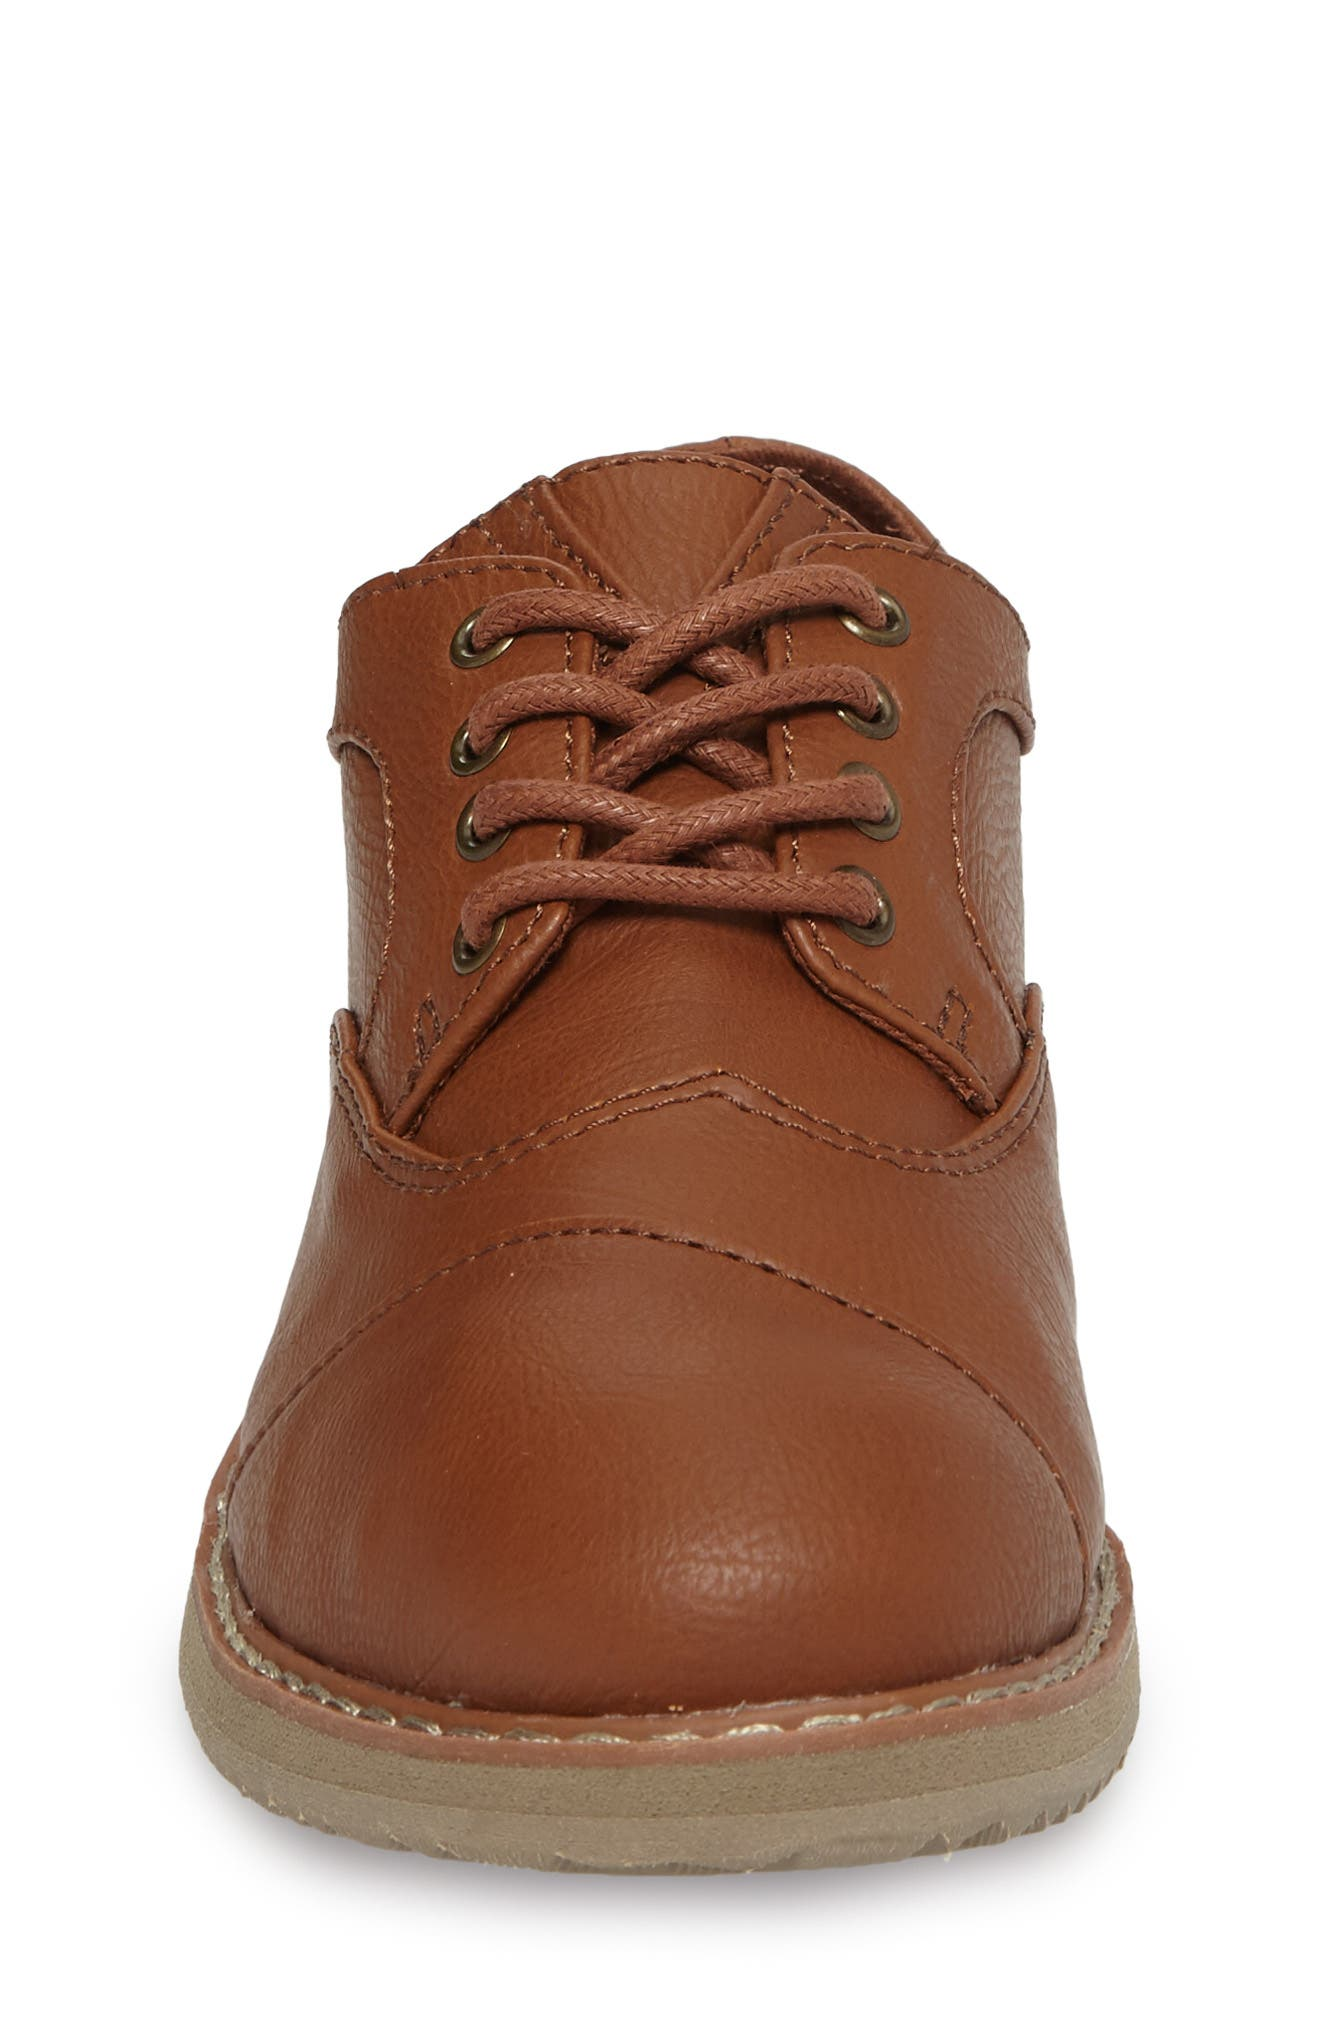 Brogue Cap Toe Wingtip Oxford,                             Alternate thumbnail 4, color,                             TOFFEE